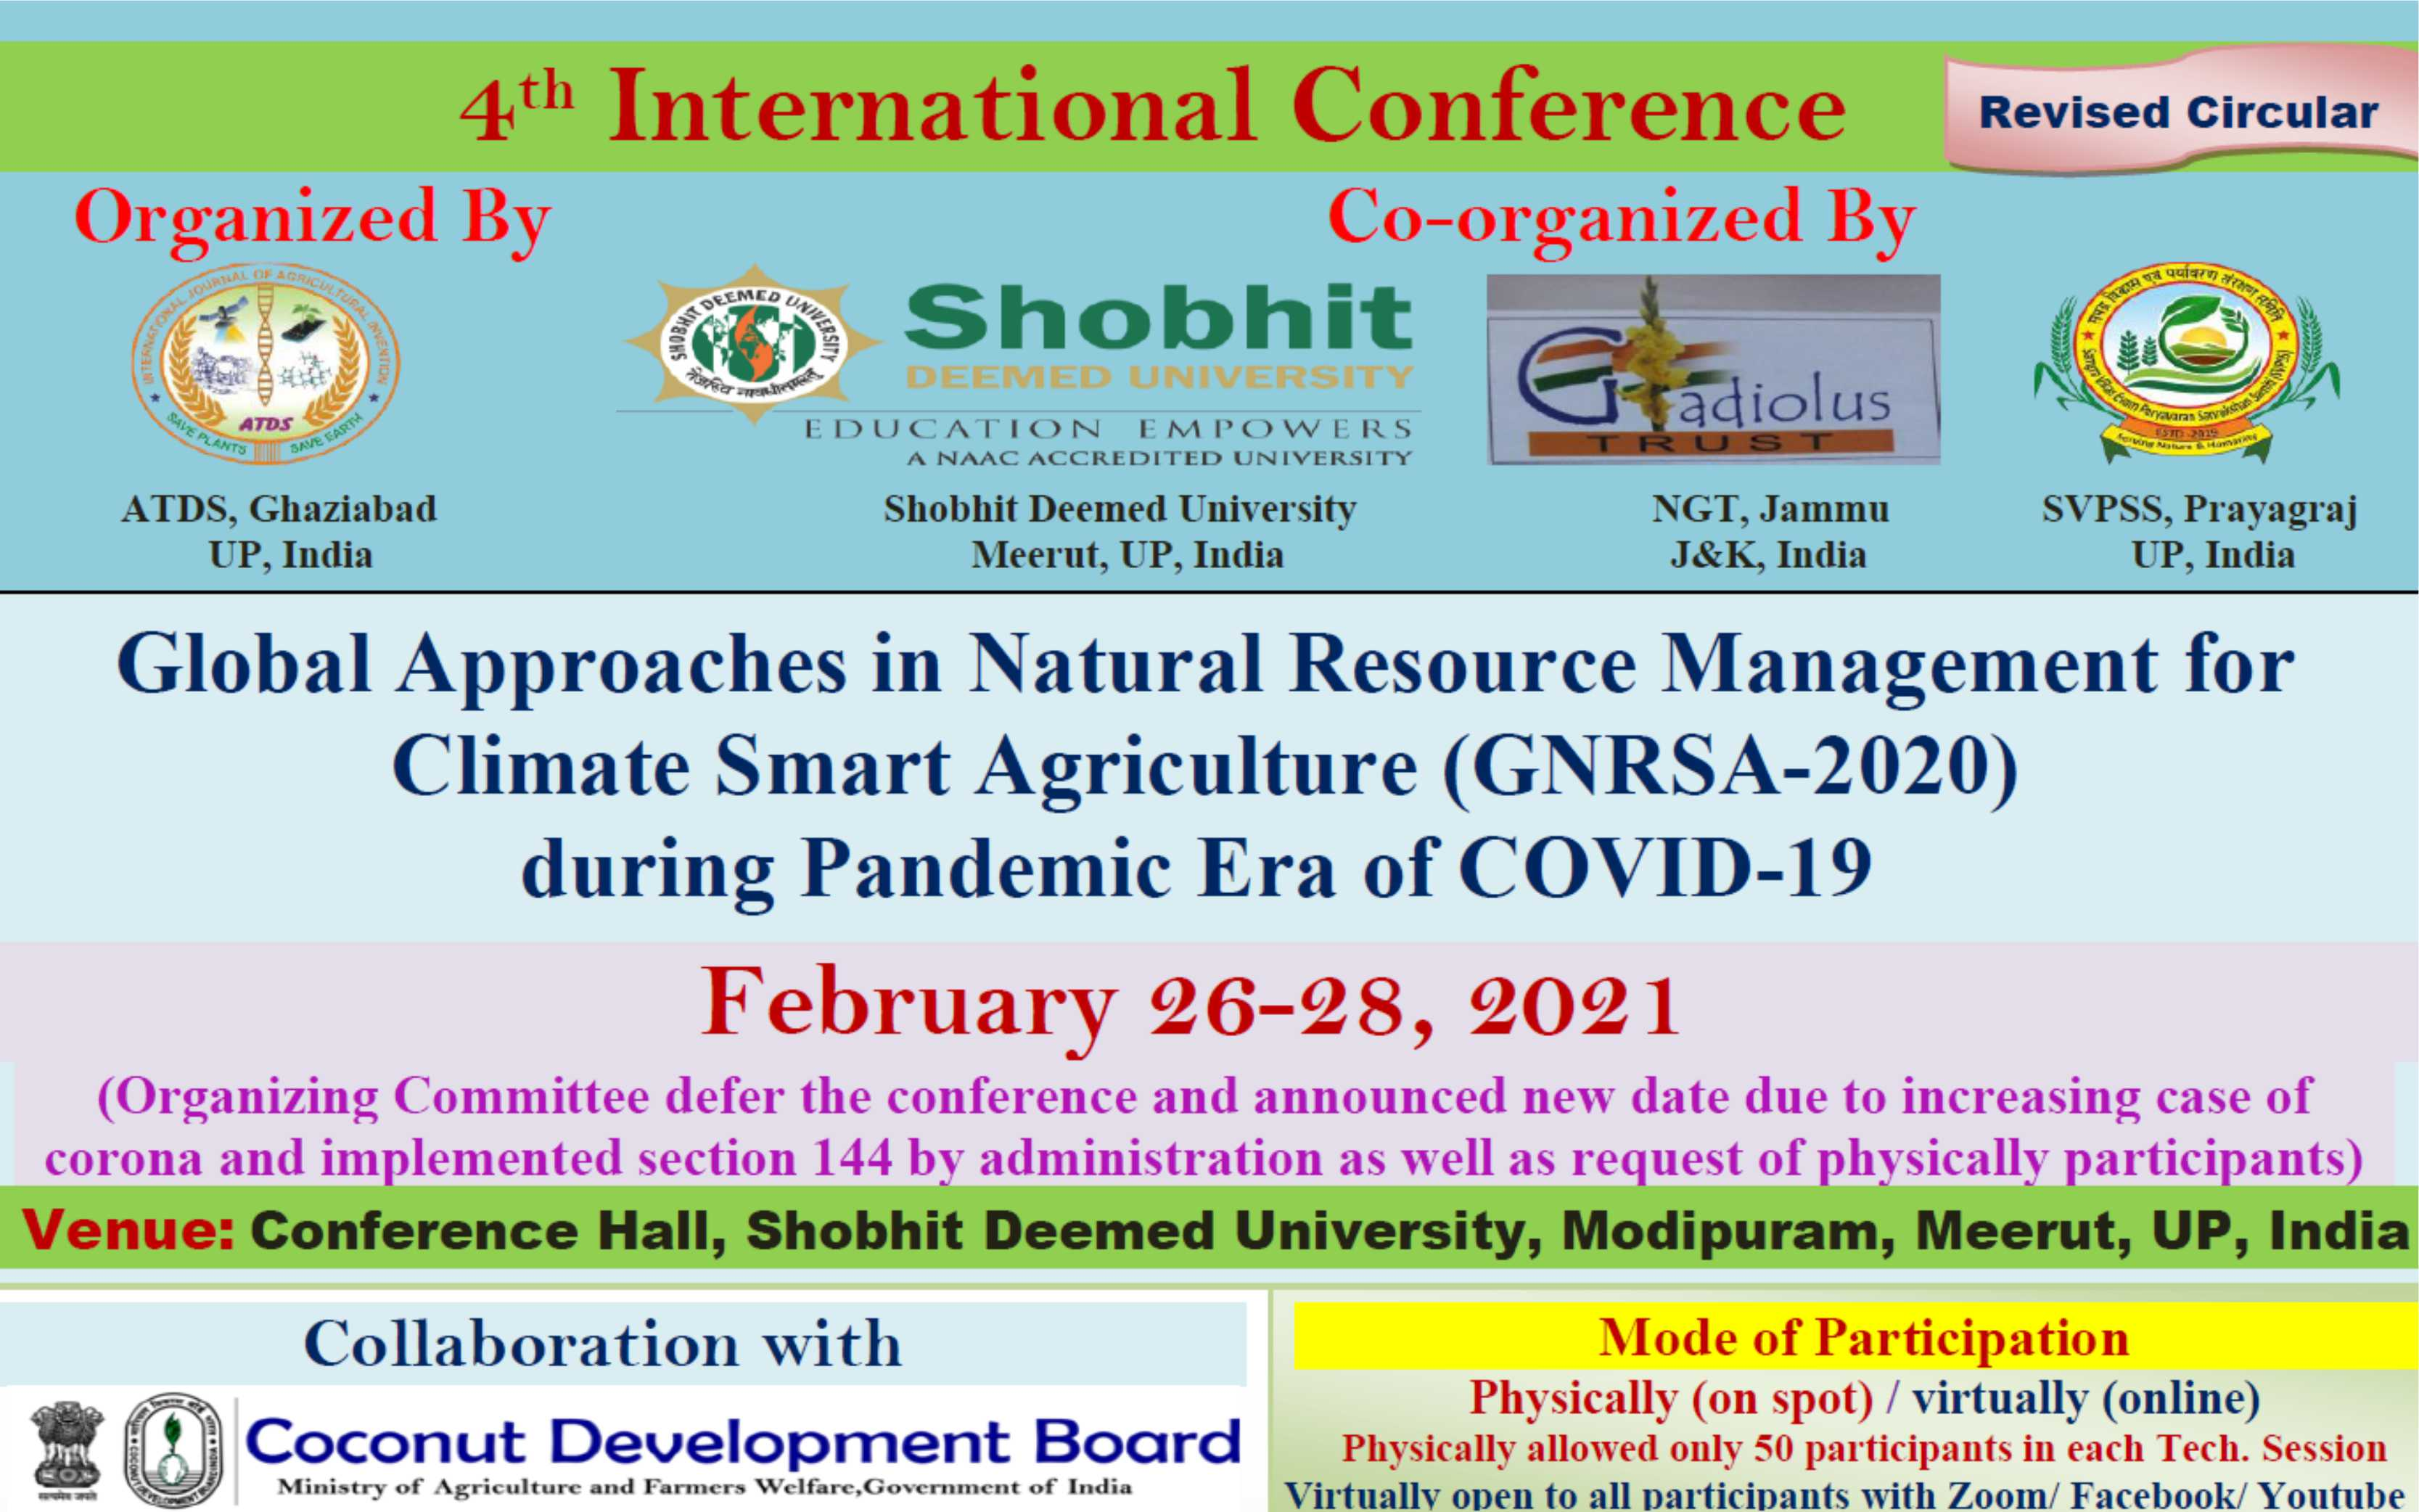 4th International Conference: GNRSA-2020 during Pandemic Era of COVID-19 on February 26-28, 2021